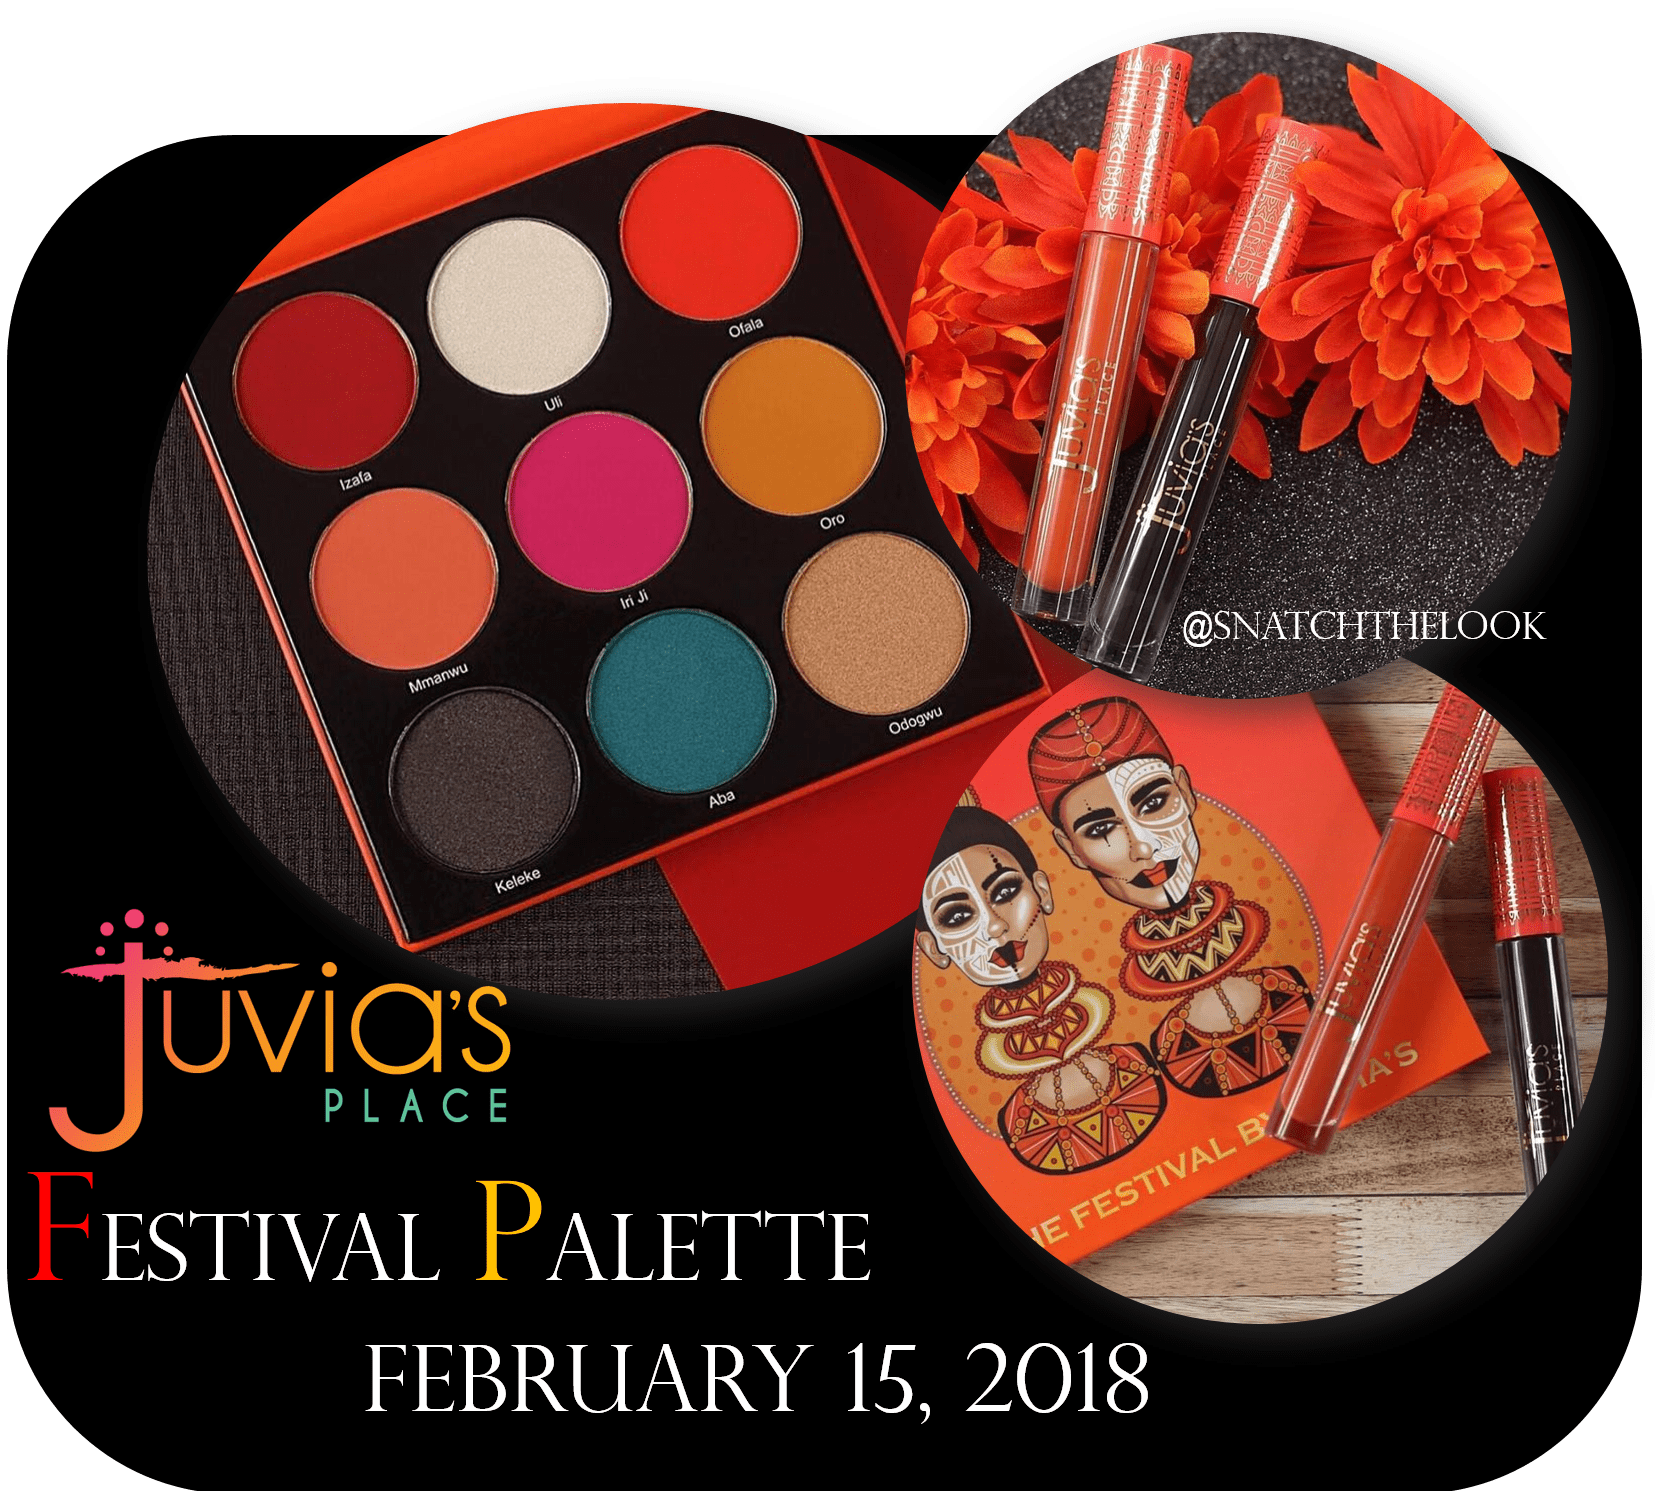 Coming Soon: 4 New Palettes from Juvia's Place, Huda Beauty, and ColourPop